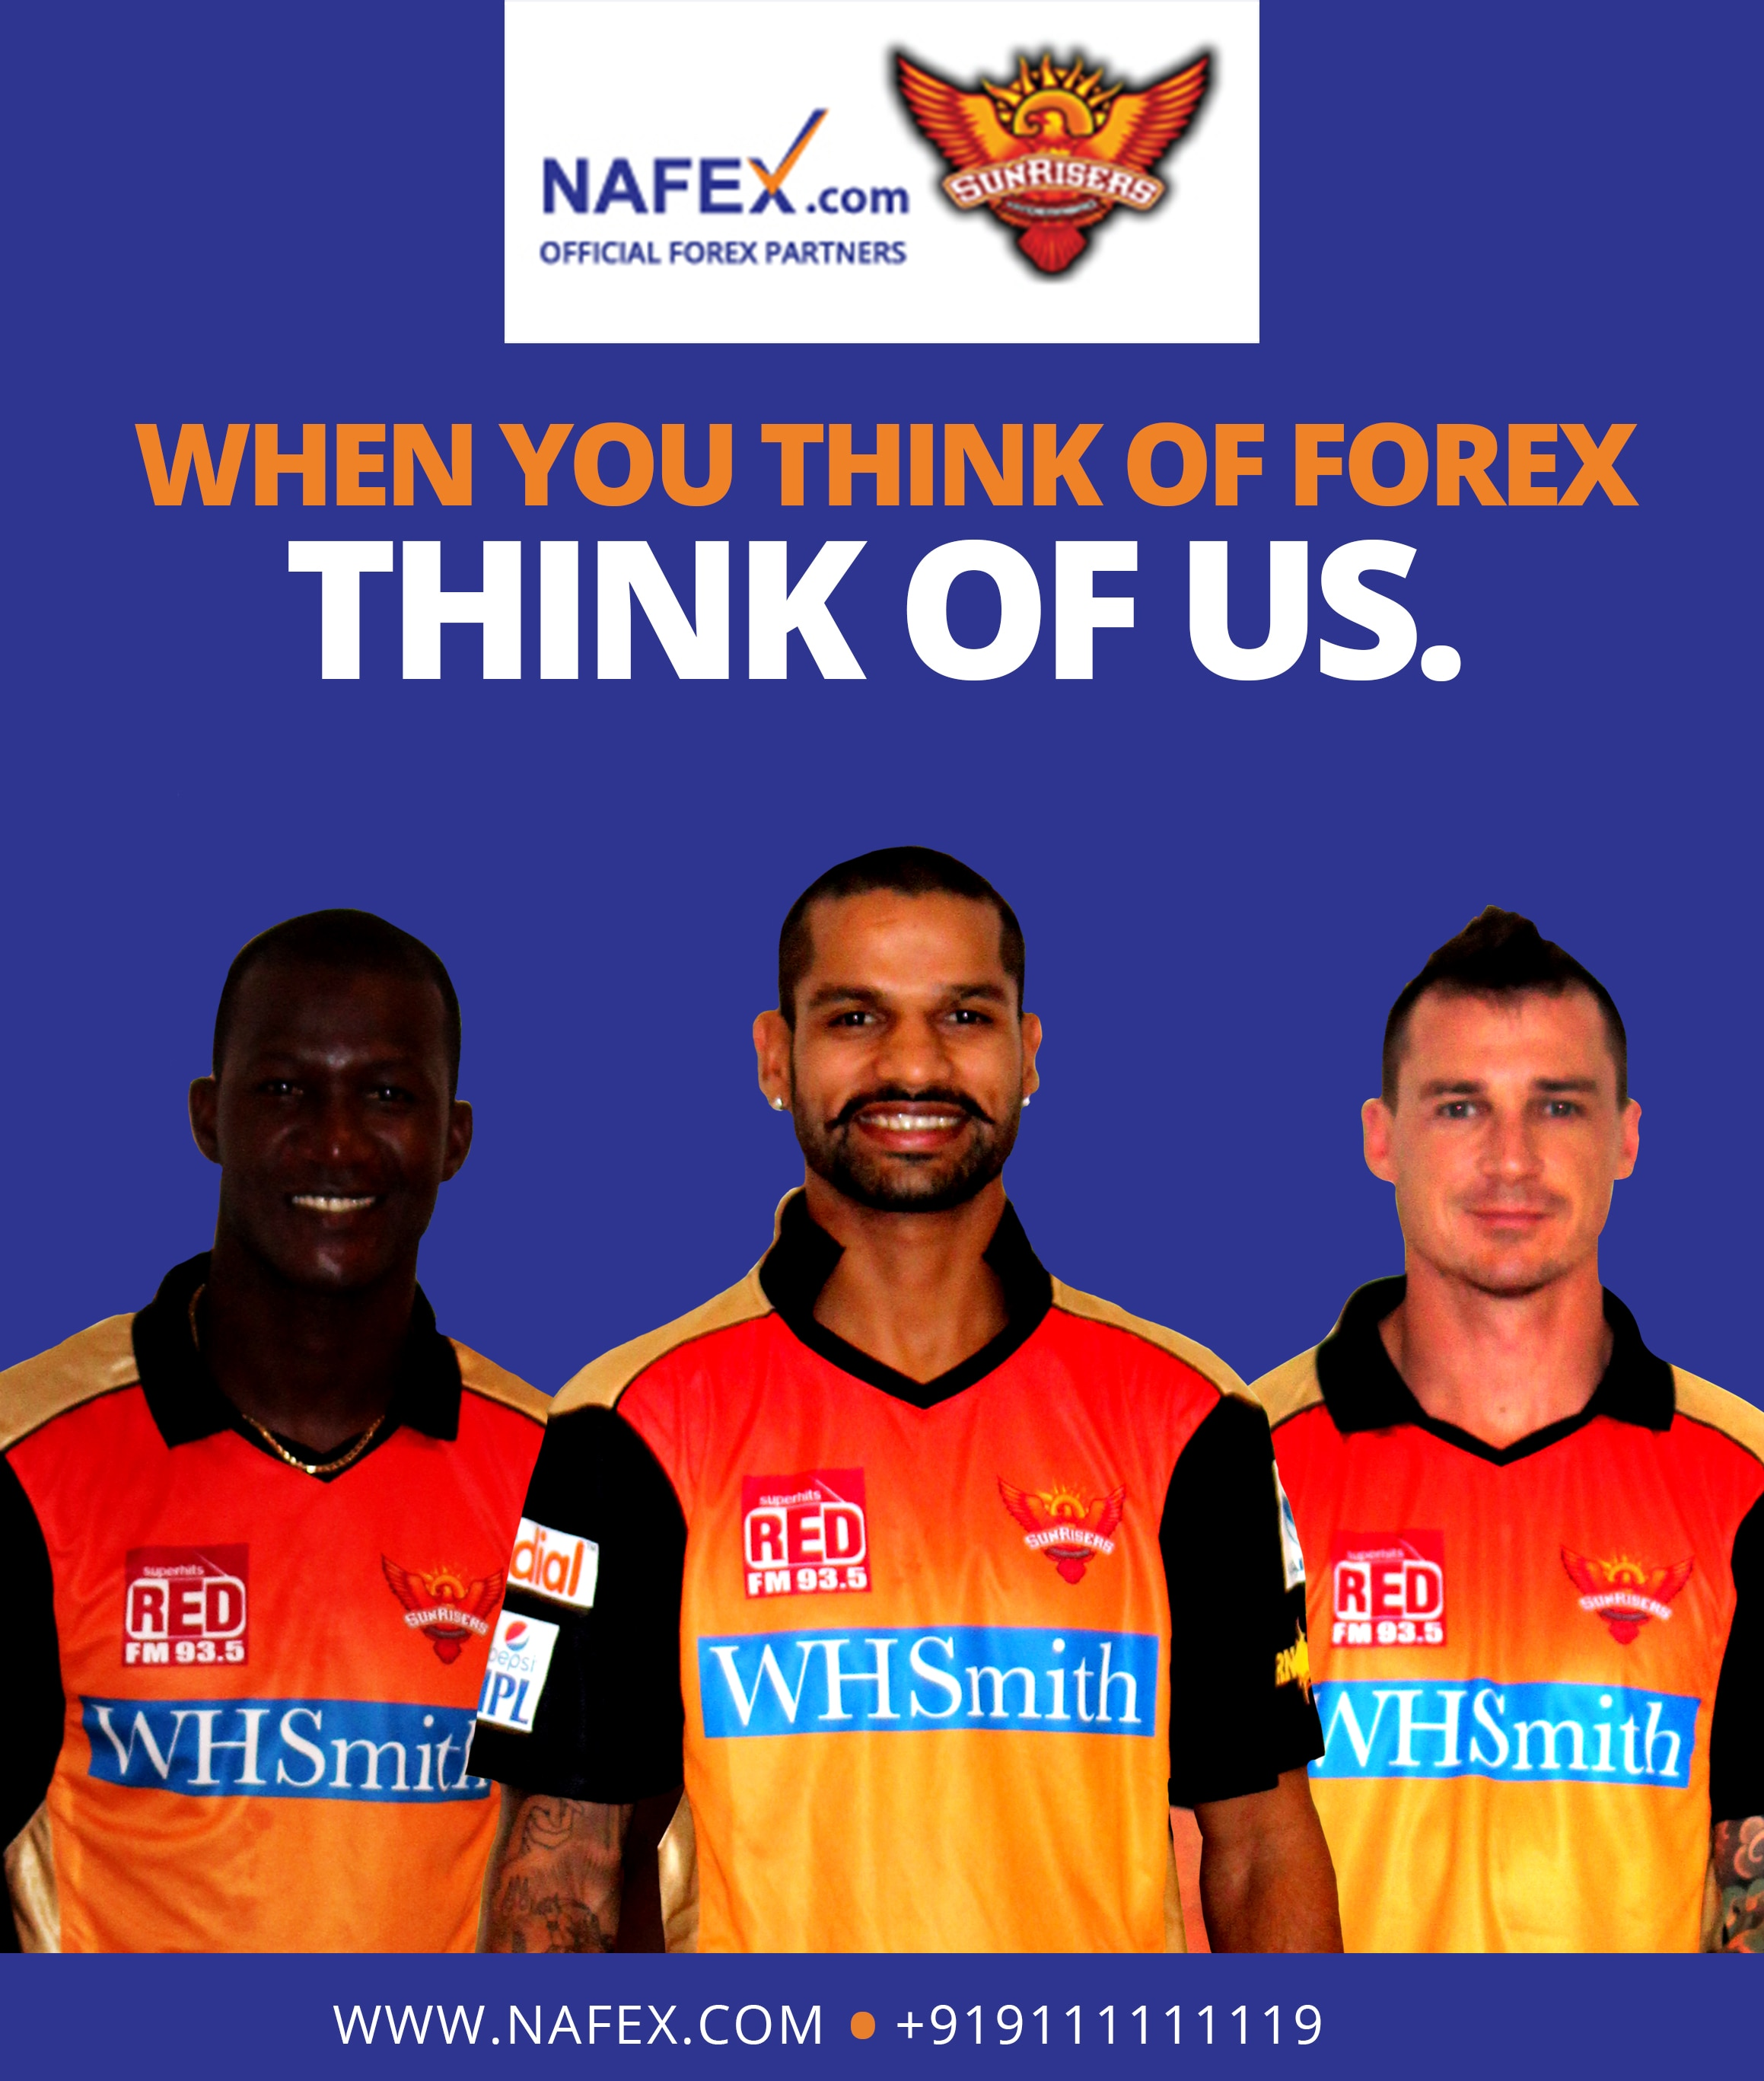 Nafex - Danilimda Road Foreign Currency Exchange Dealers Agents Danilimda Road, Online Travellers Cheque & Forex Prepaid Card